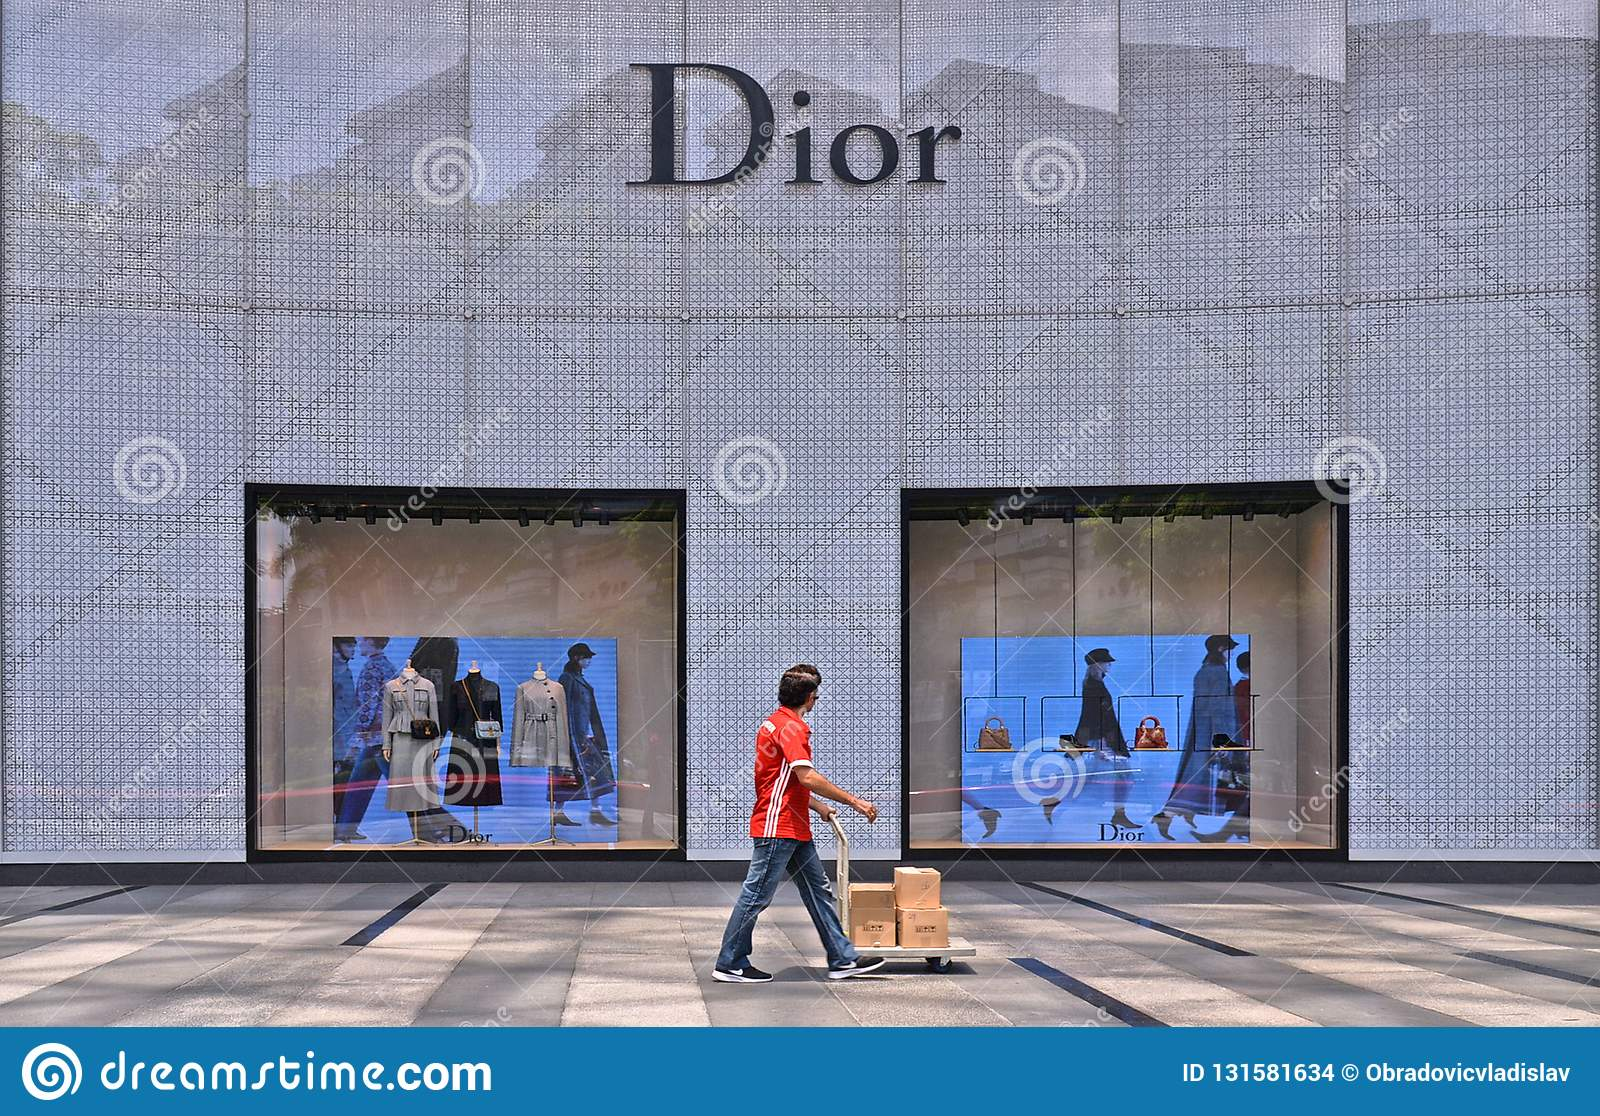 Orchard shopping mall on Orchard Road in Singapore modern district. worker passes with packages